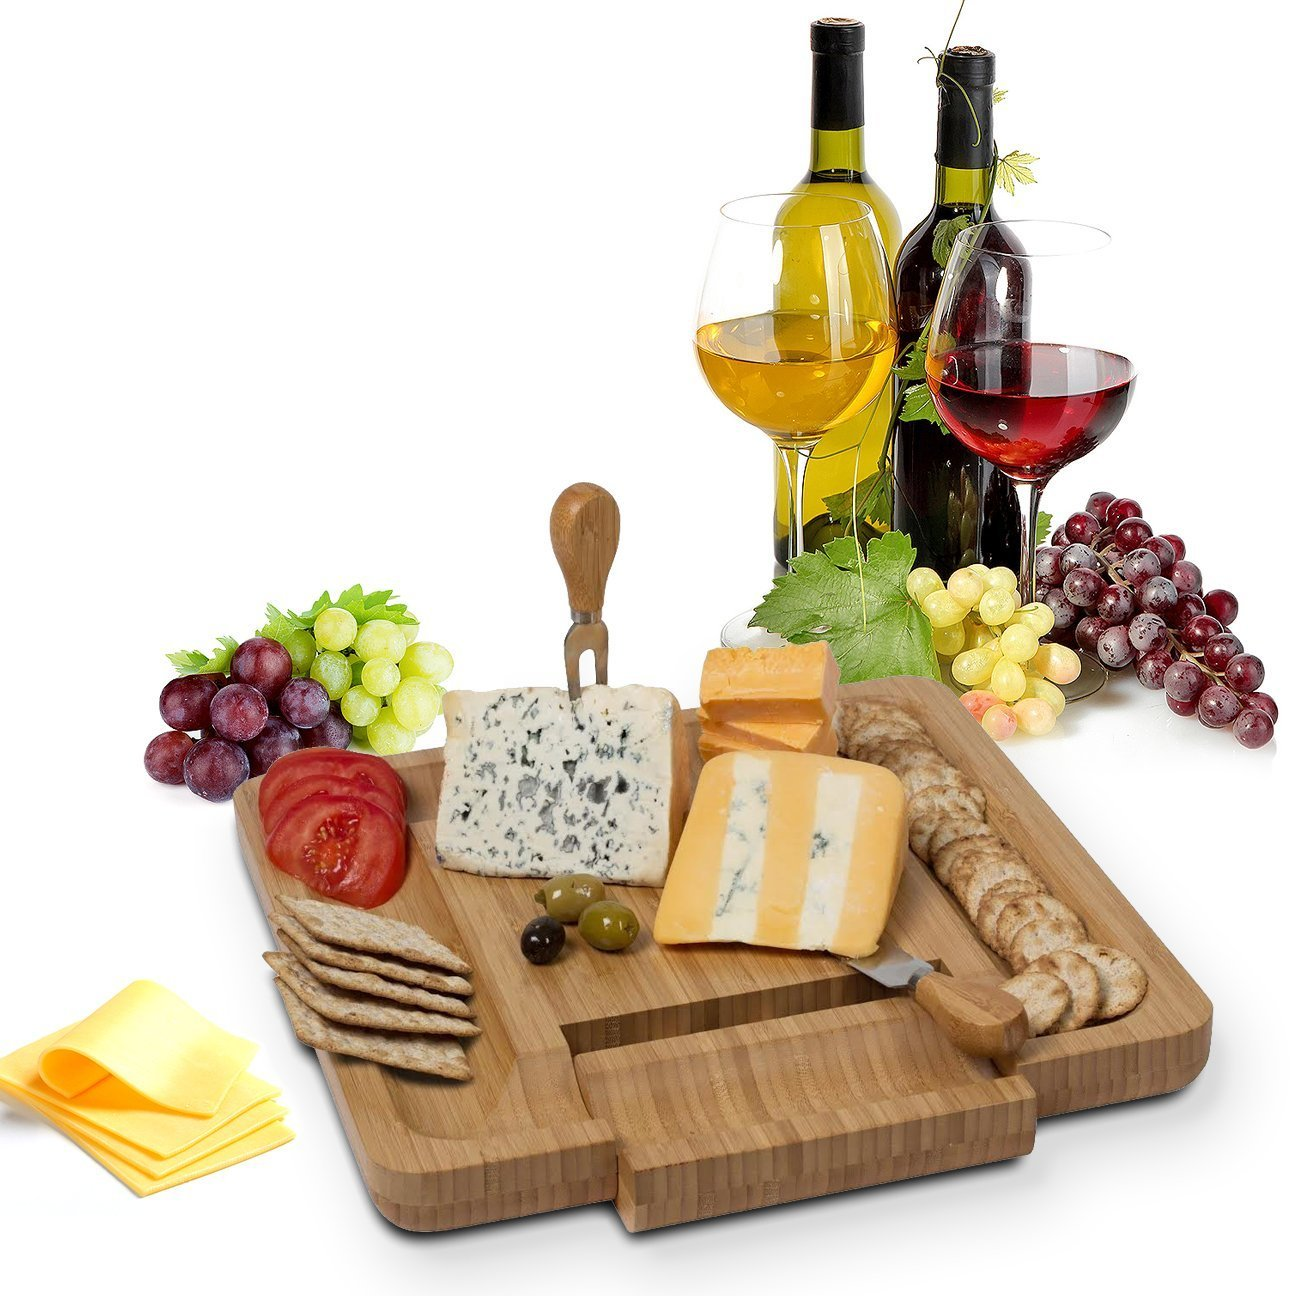 Bamboo Cheese Board With Cutlery Knife Set -Meat Wood Charcuterie Serving Platter Tray Equipped Drawer That Slides Out And Swings Fully. Comes With 4 Stainless Steel Knifes Server Set By House Ur Home